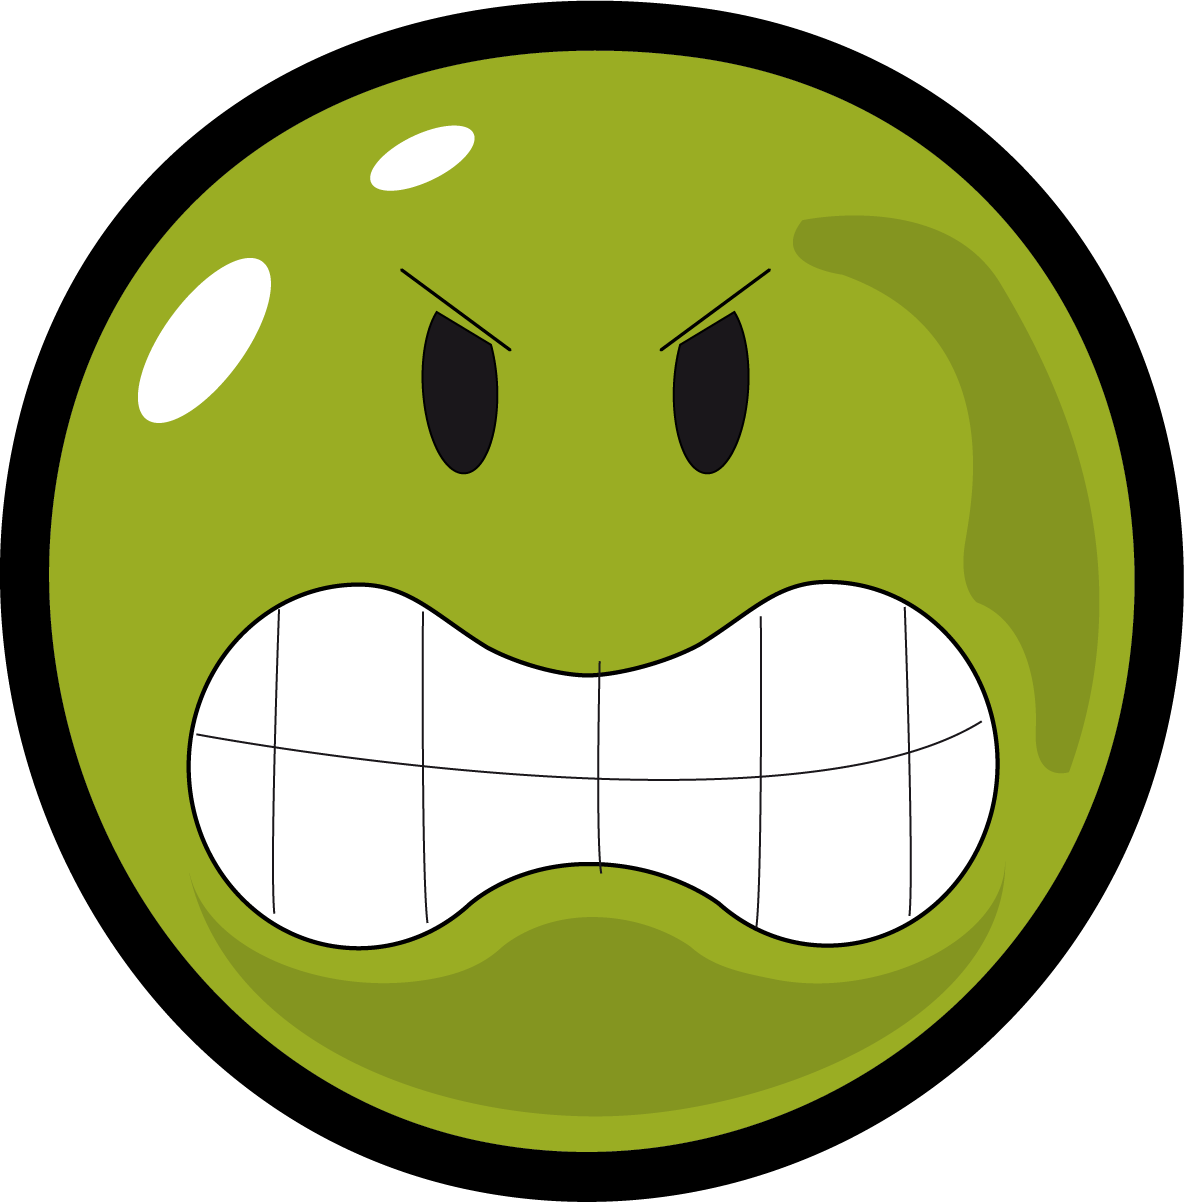 Smiley clipartly comclipartly com. Angry clipart angry face